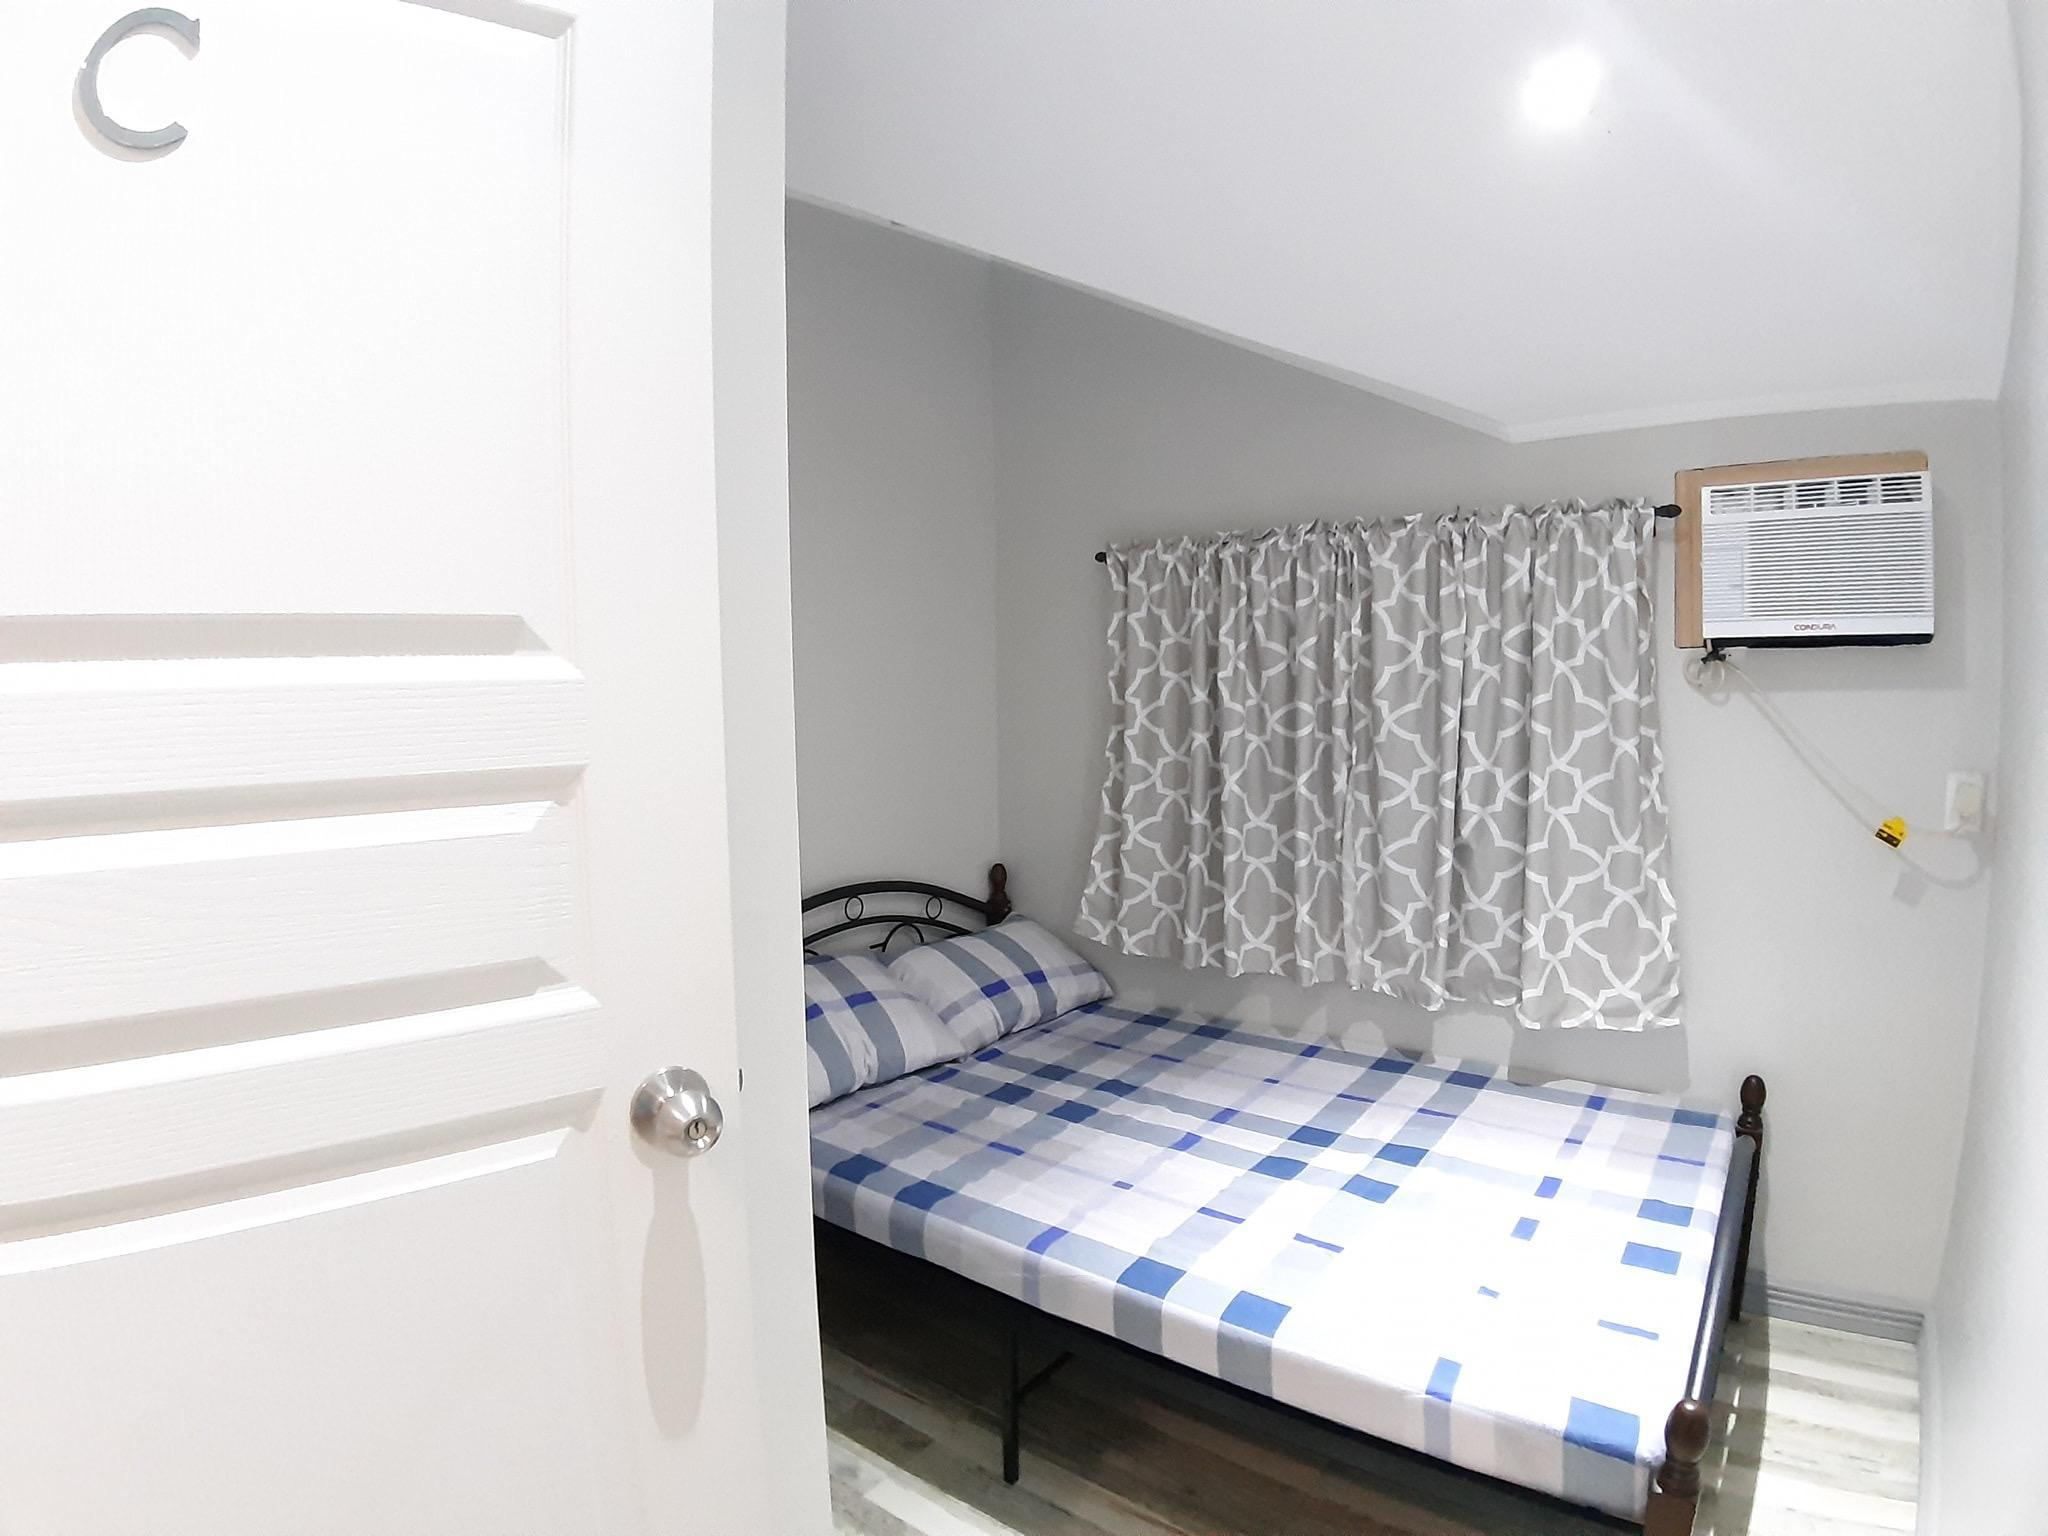 Mistow Room C in Dumaguete close to Aiport - Hotels Information/Map/Reviews/Reservation